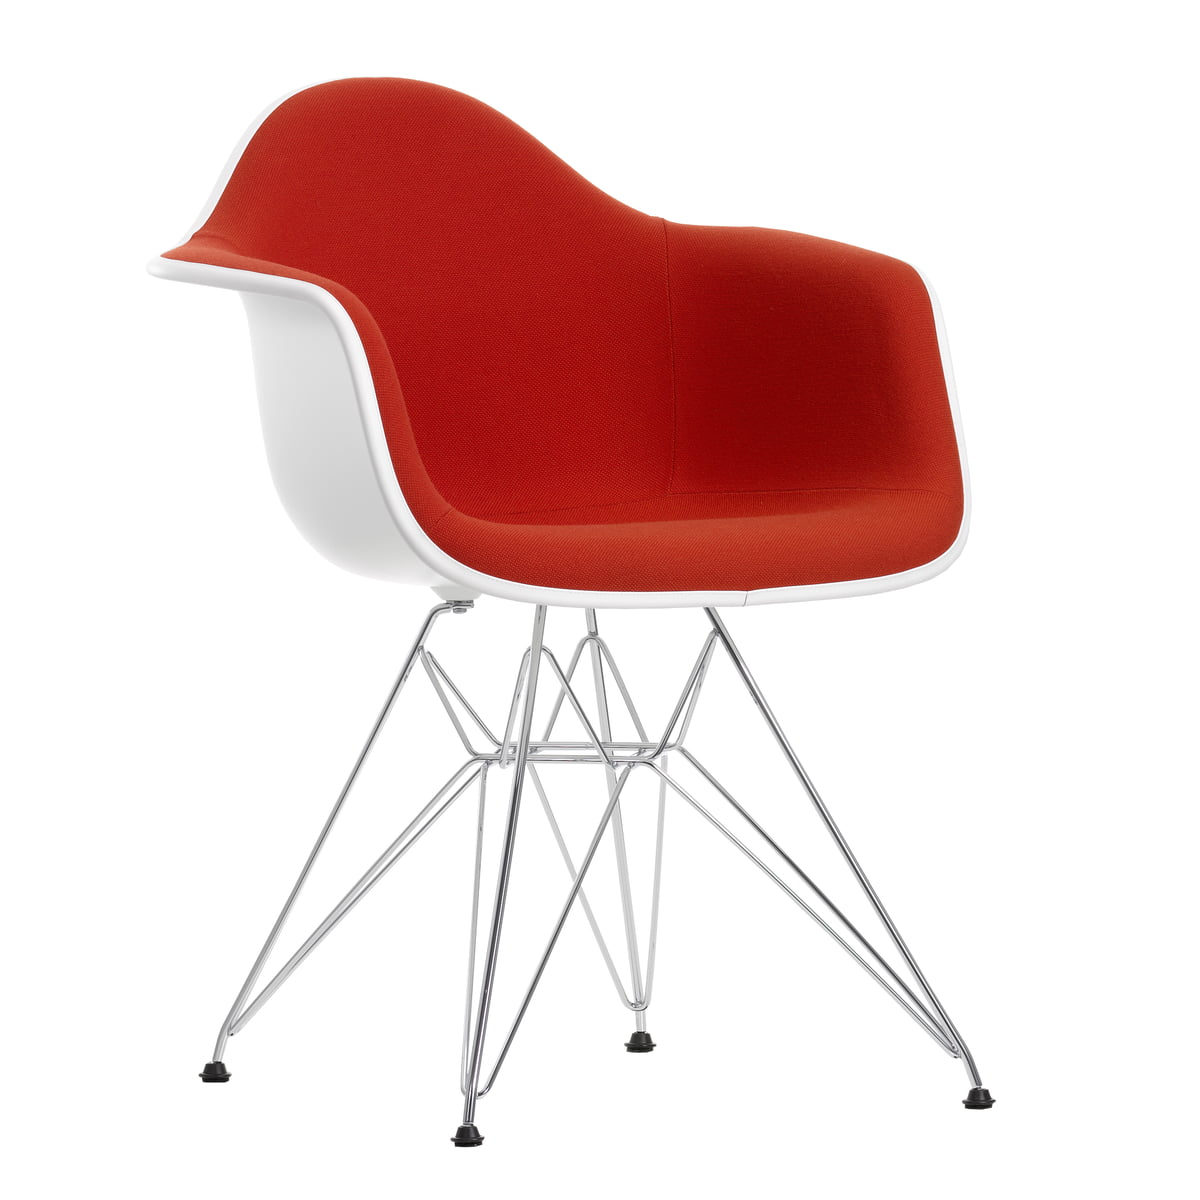 Eames Plastic Armchair DAR   Full Upholstery, Hopsak Red/orange